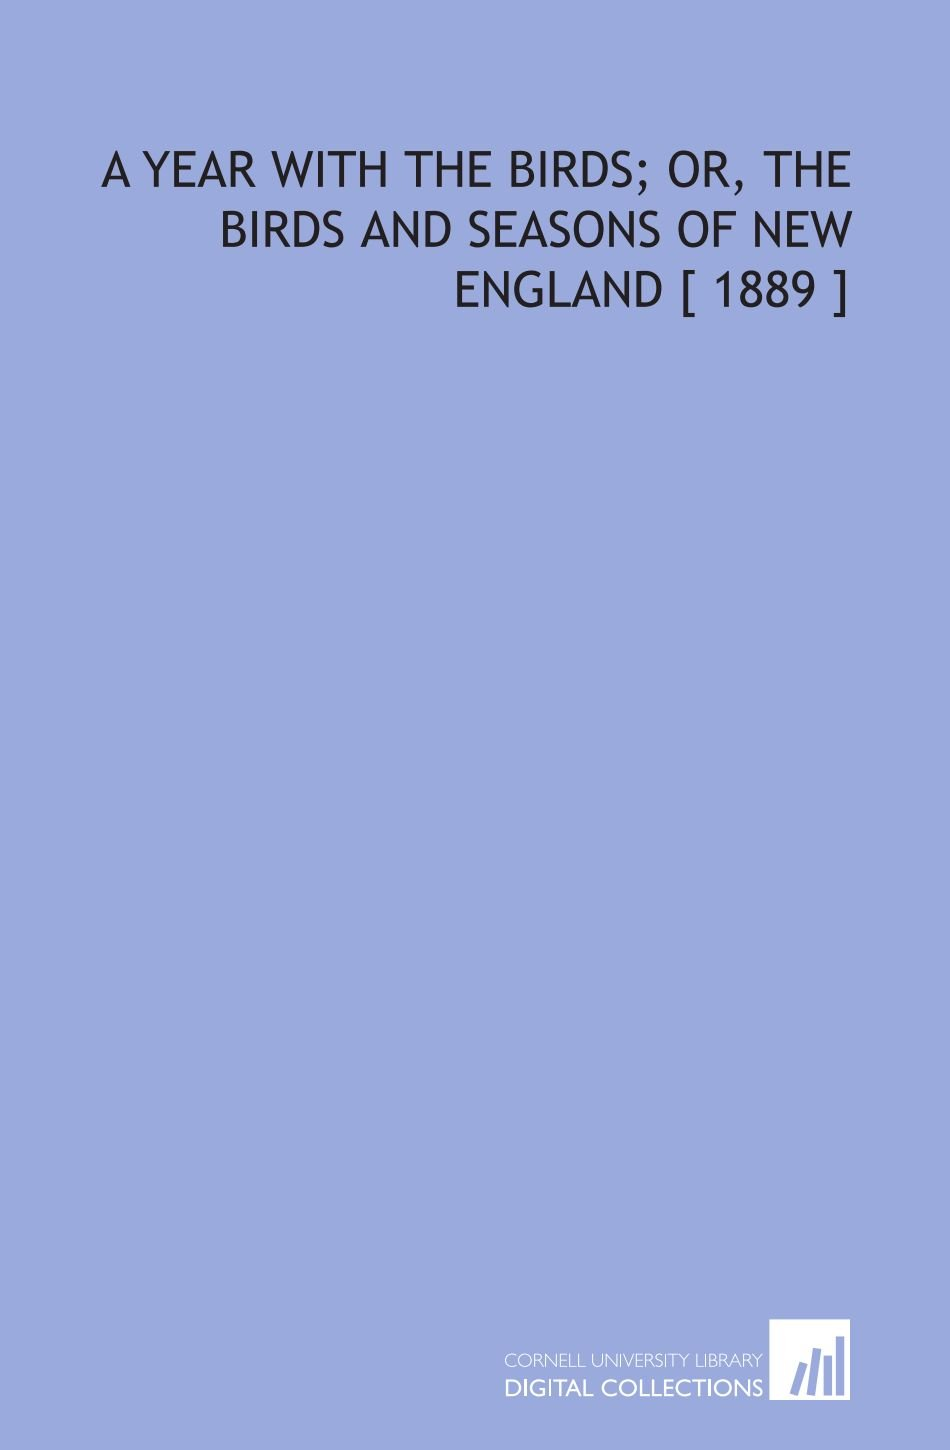 A Year With the Birds; or, the Birds and Seasons of New England [ 1889 ] pdf